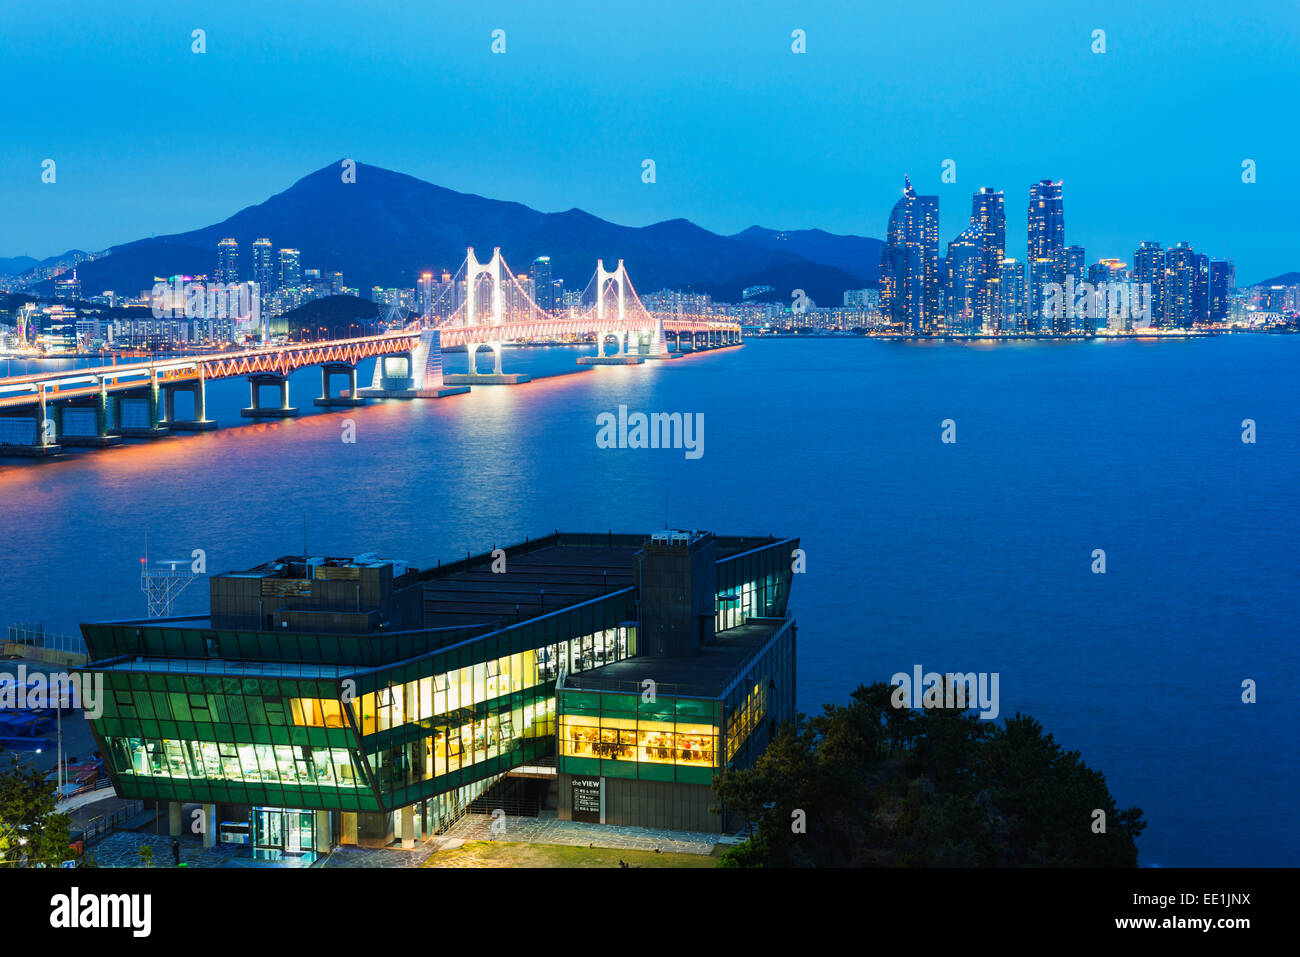 City skyline and Gwangang bridge, Busan, South Korea, Asia - Stock Image